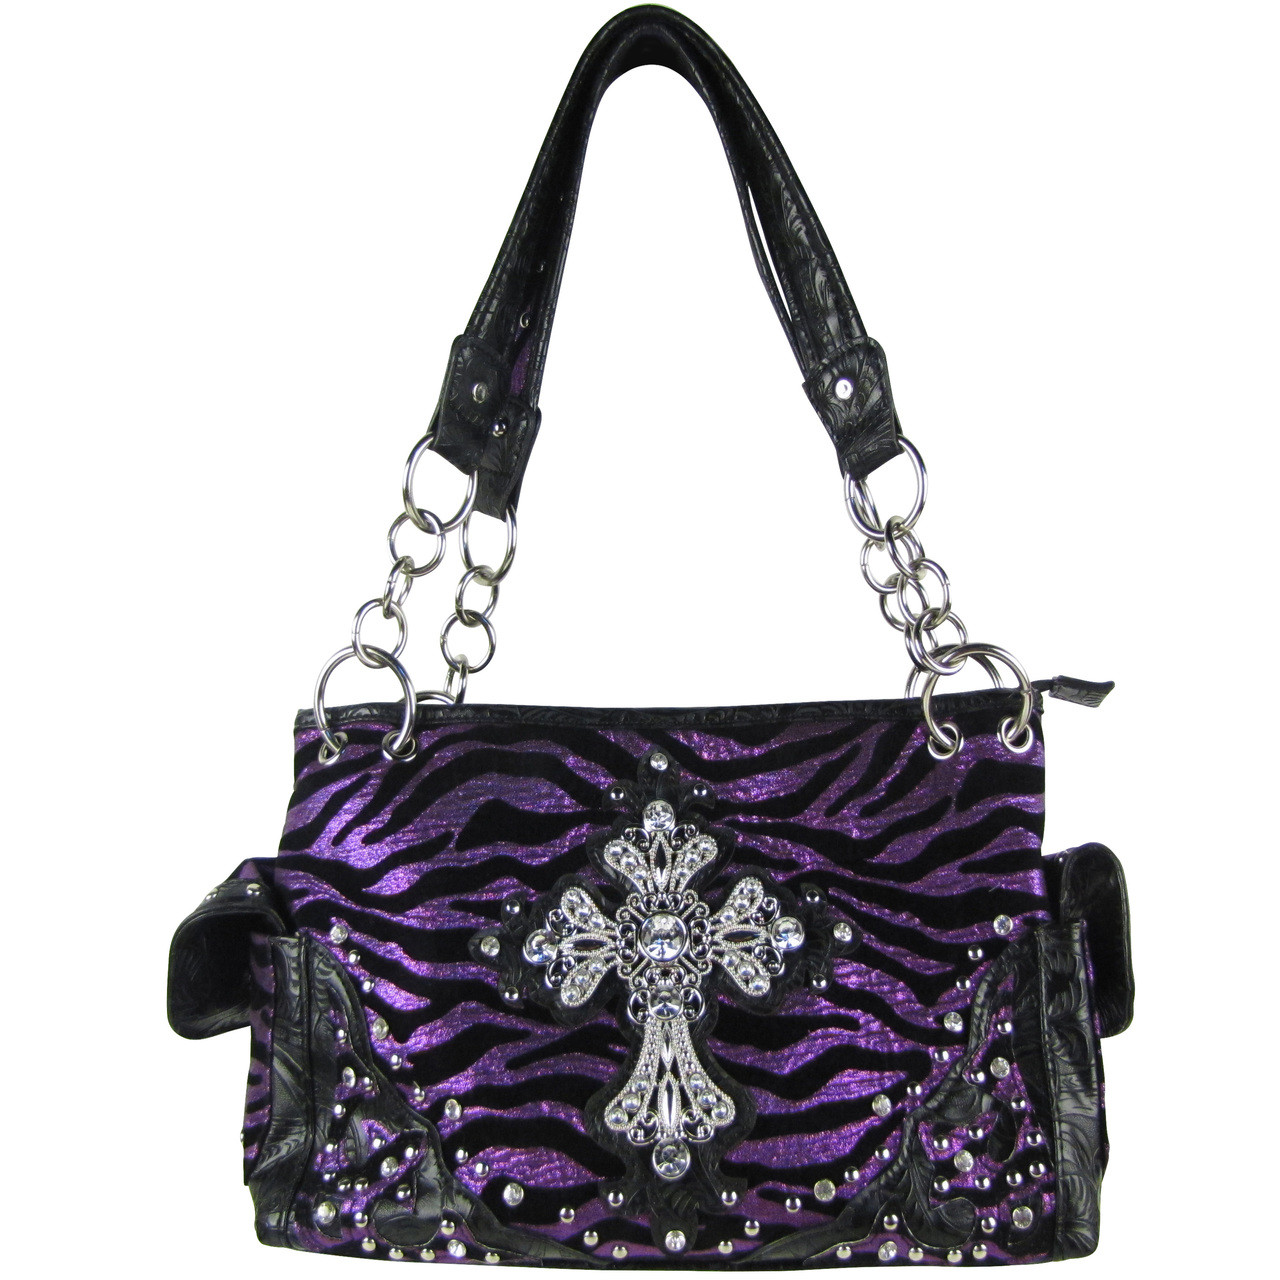 PURPLE ZEBRA RHINESTONE CROSS SHOULDER HANDBAG HB1-FZLCR-3PPL